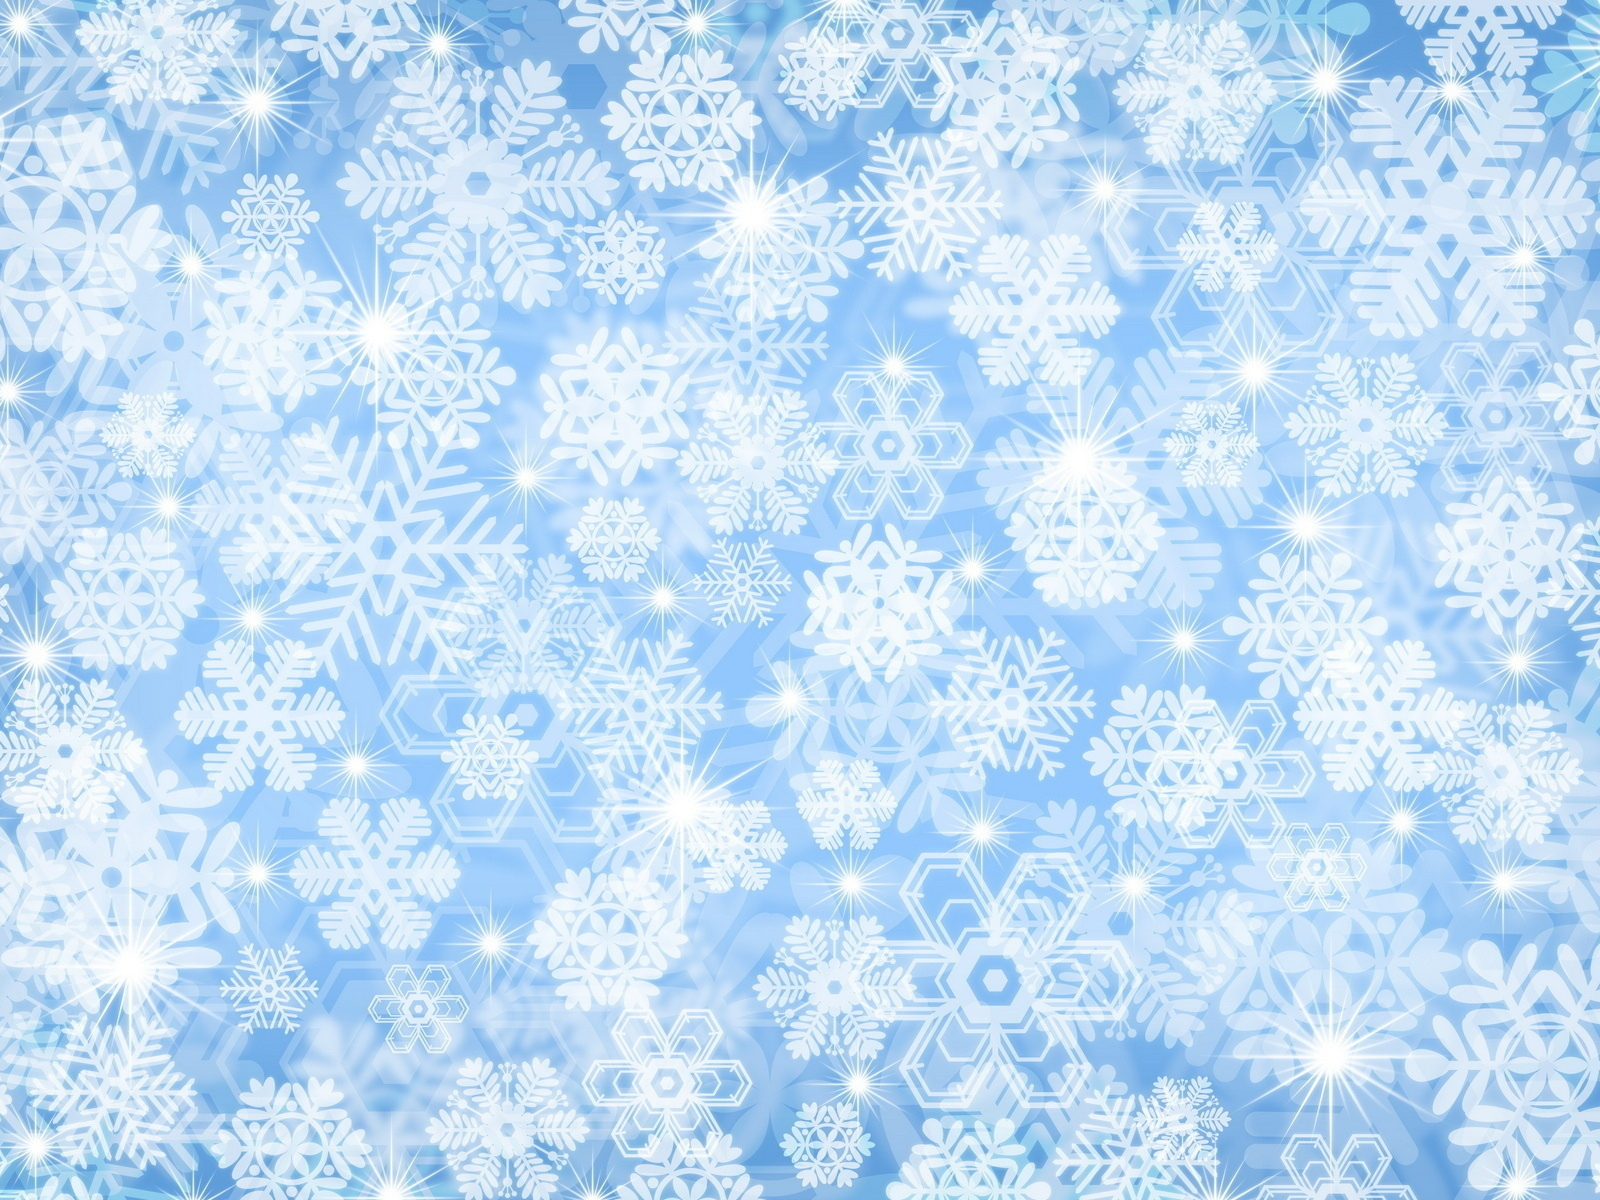 cool bright snowflake background wallpapers #1649